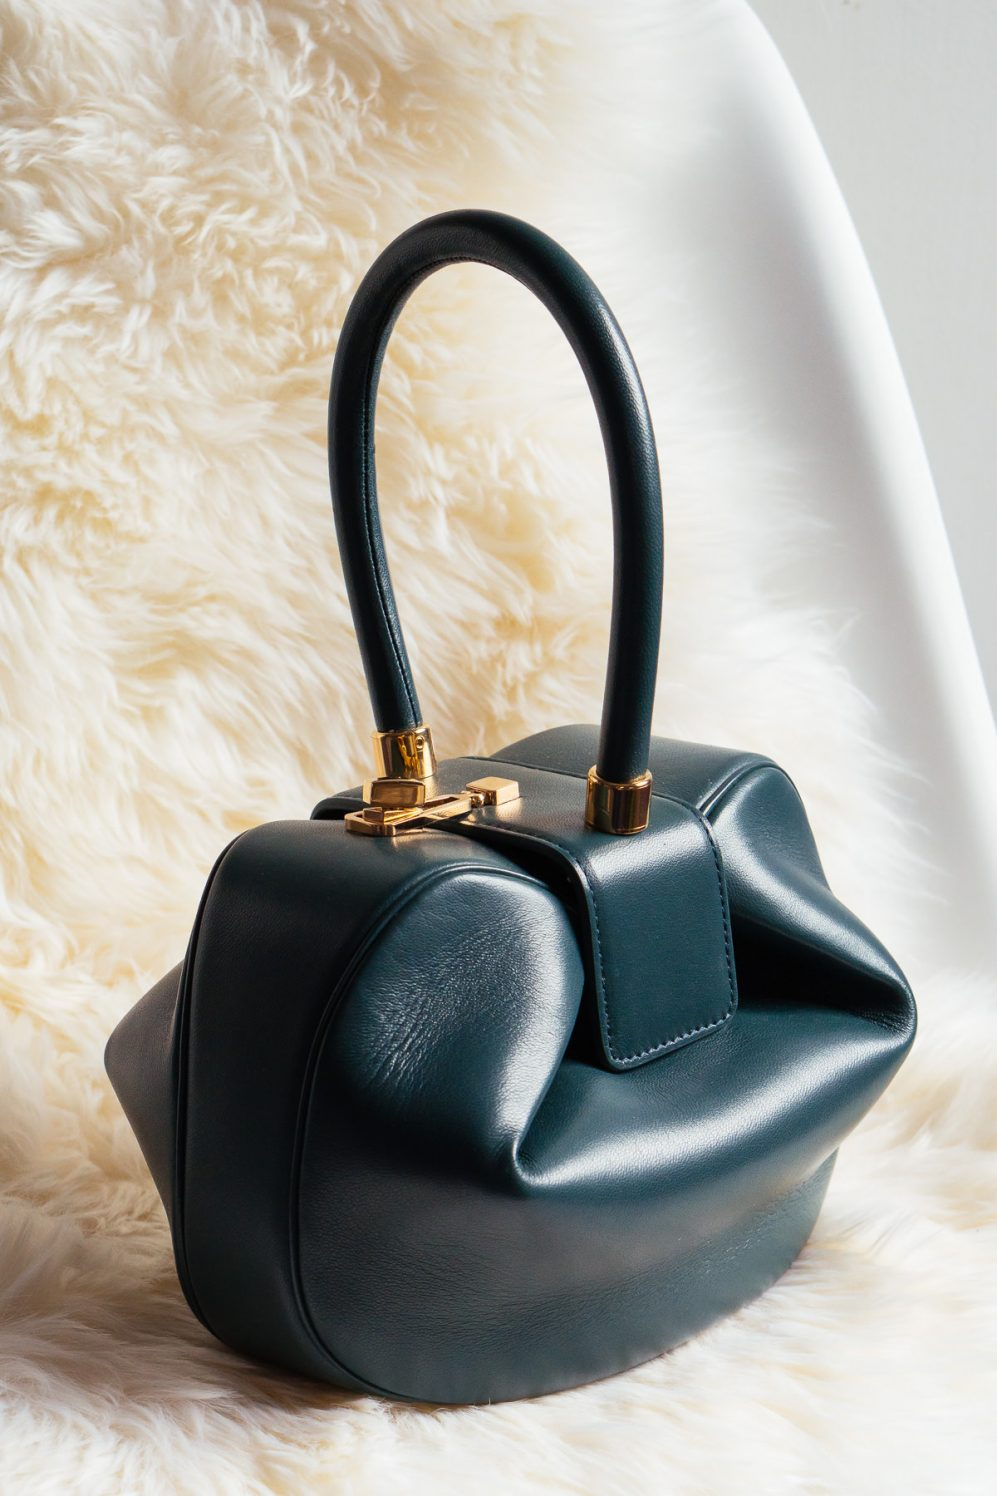 Loving Lately: The Gabriela Hearst Nina Bag - PurseBlog